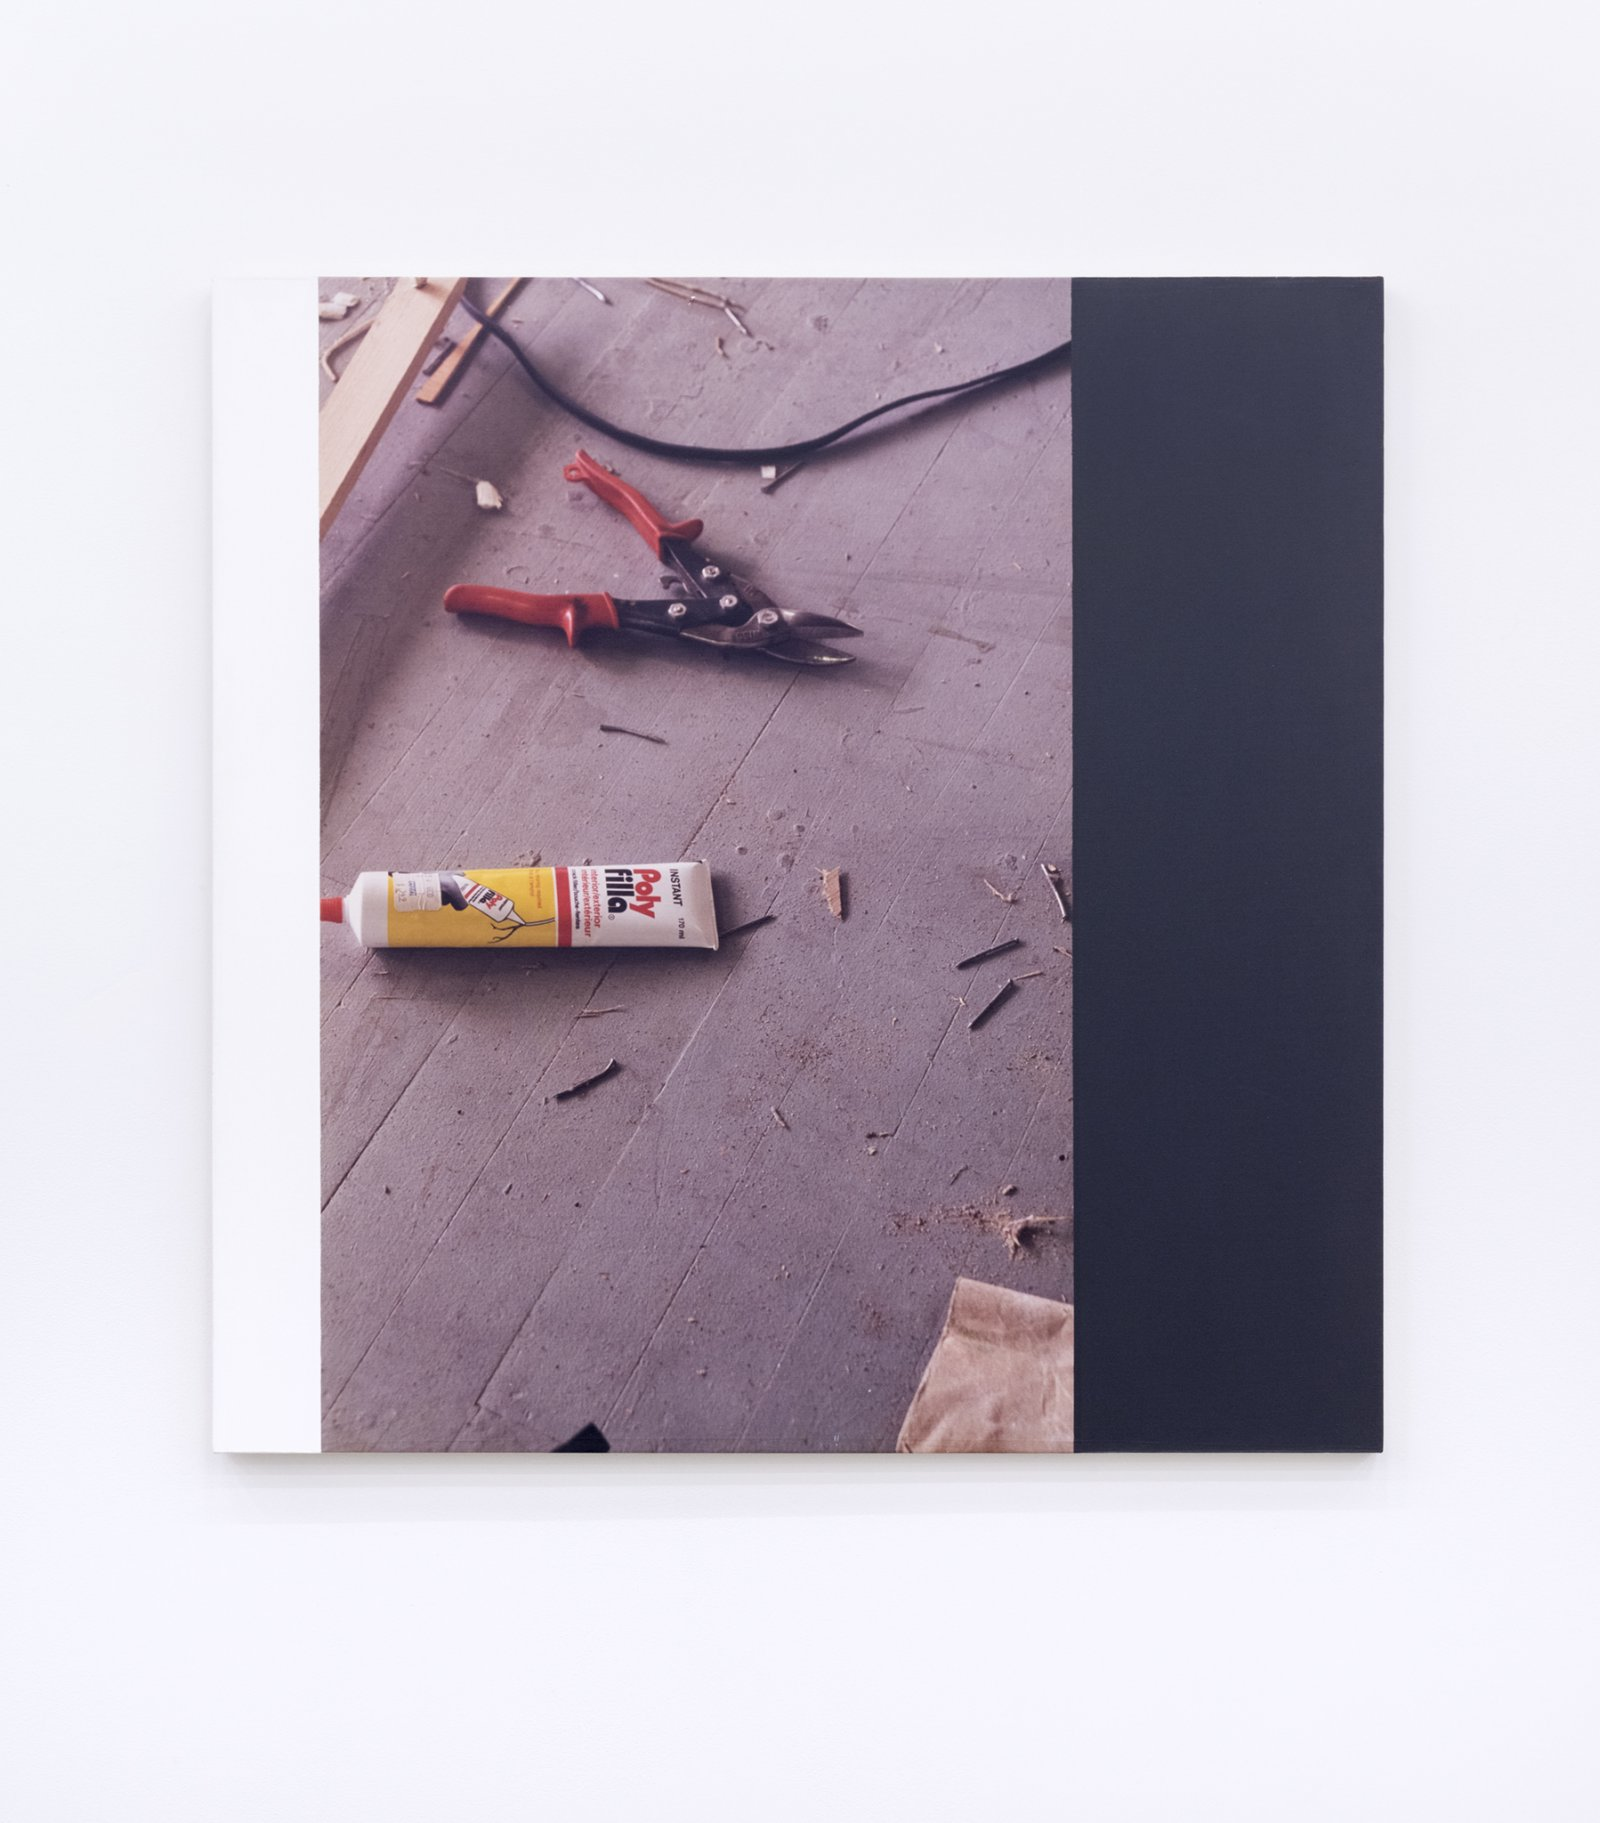 Ian Wallace, Messes from the floor of the studio of Elspeth Pratt VII, 1989, photolaminate and acrylic on canvas, 48 x 48 in. (122 x 122 cm) by Ian Wallace